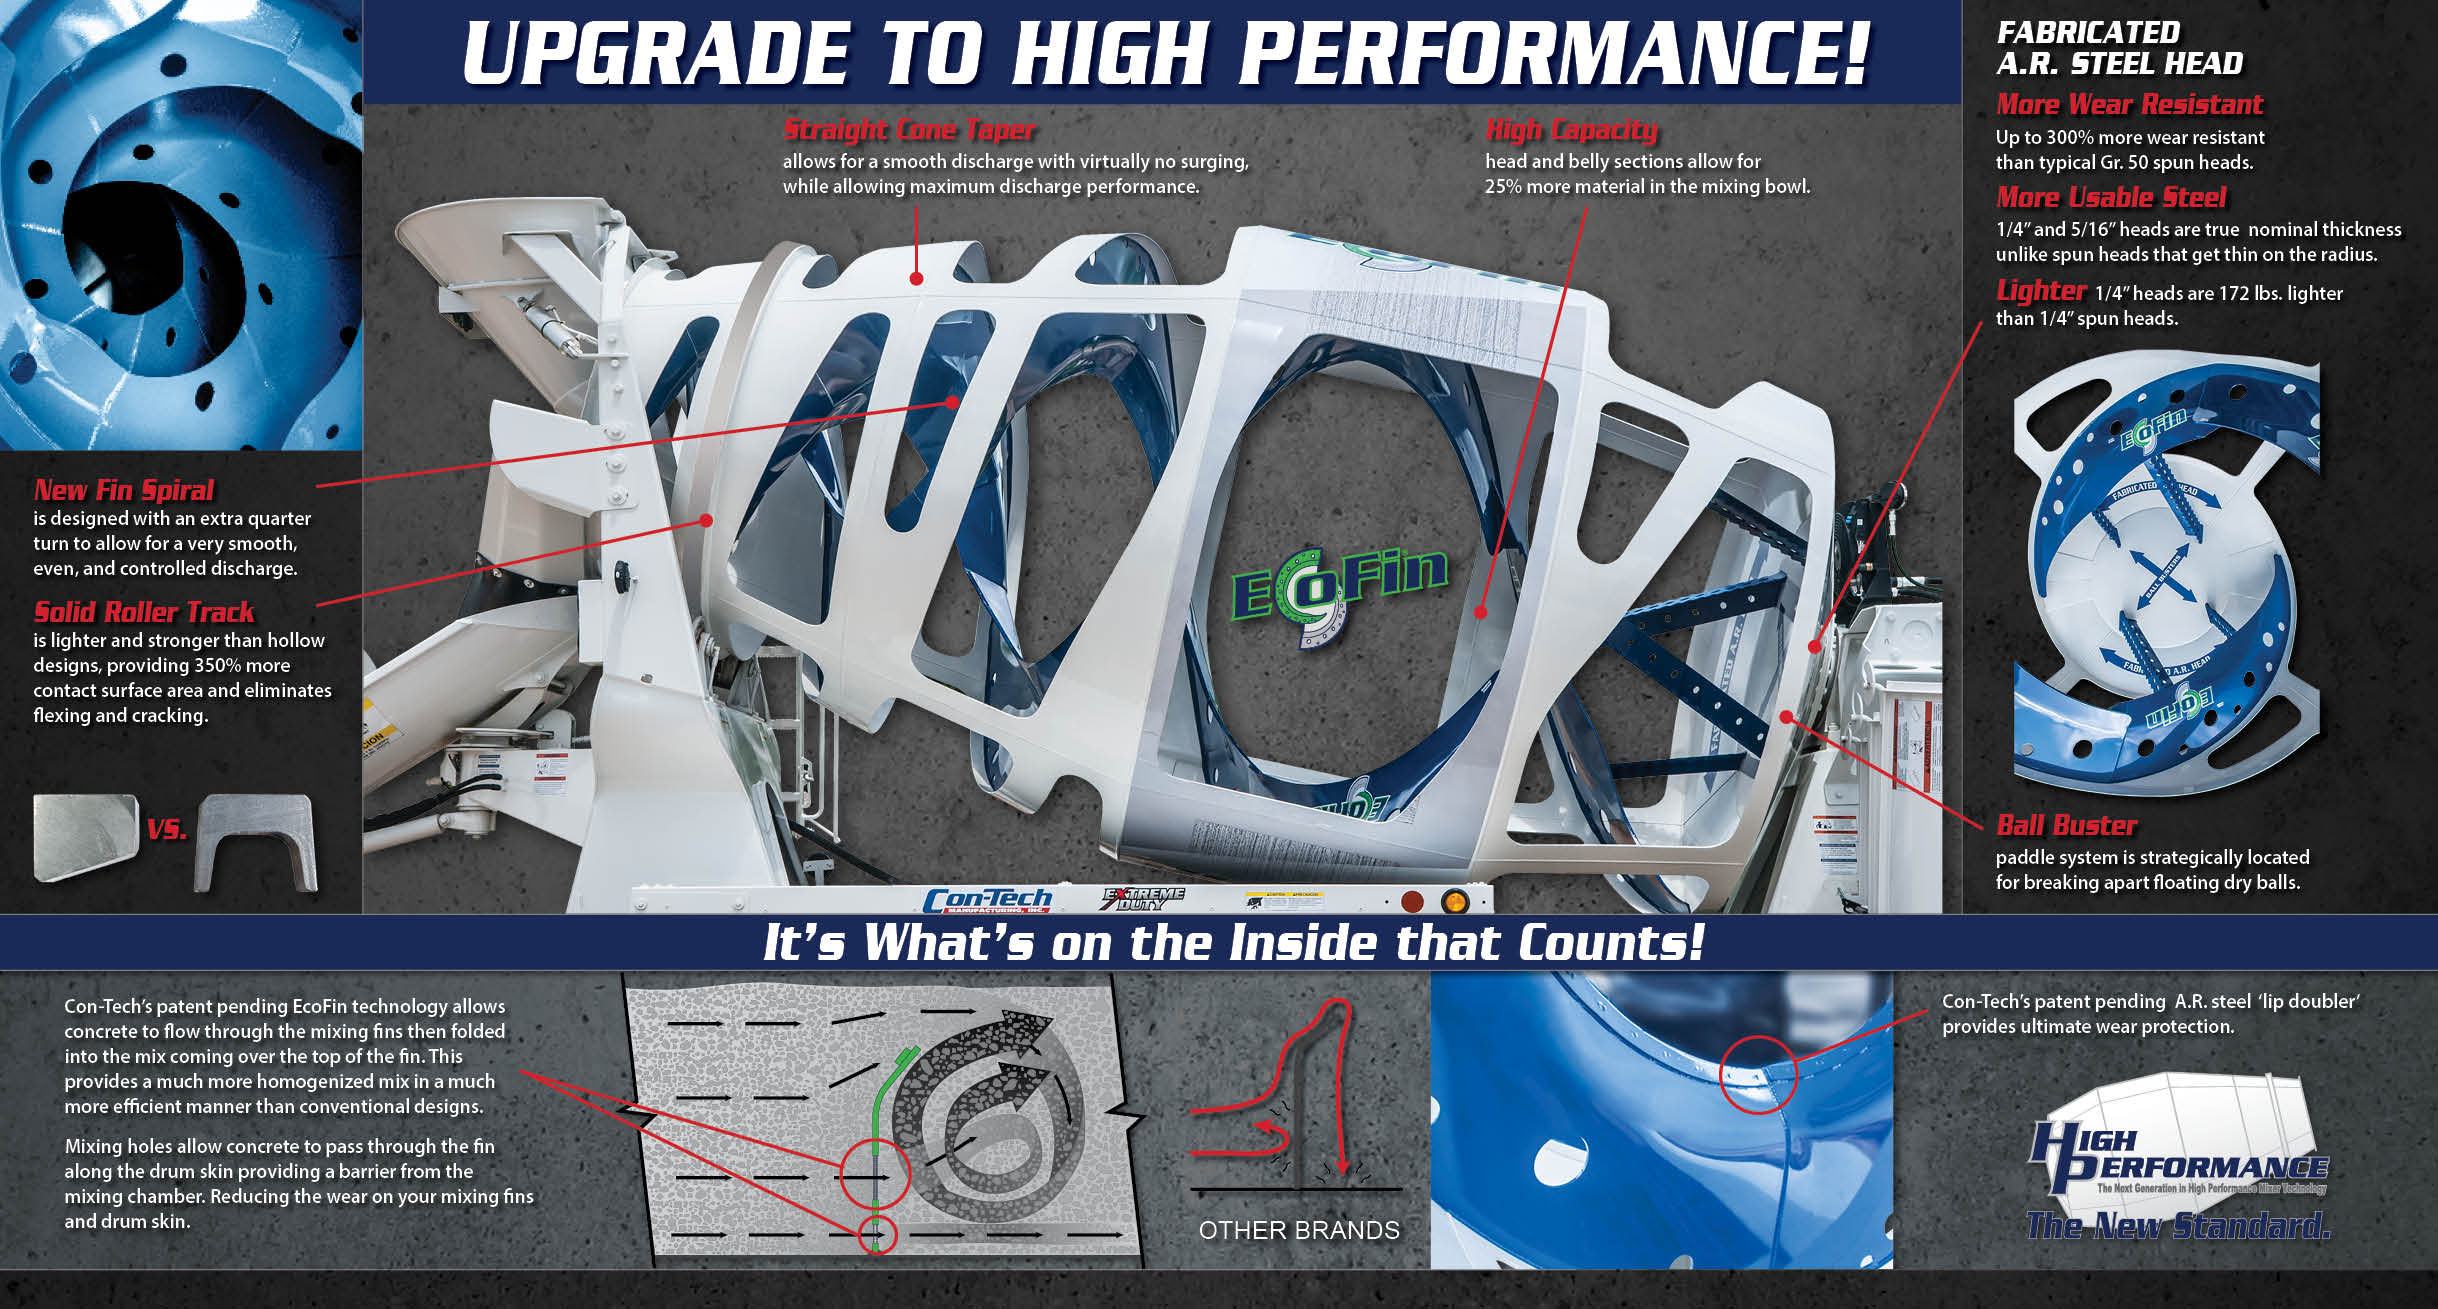 Extreme Performance: Upgrade to high performance